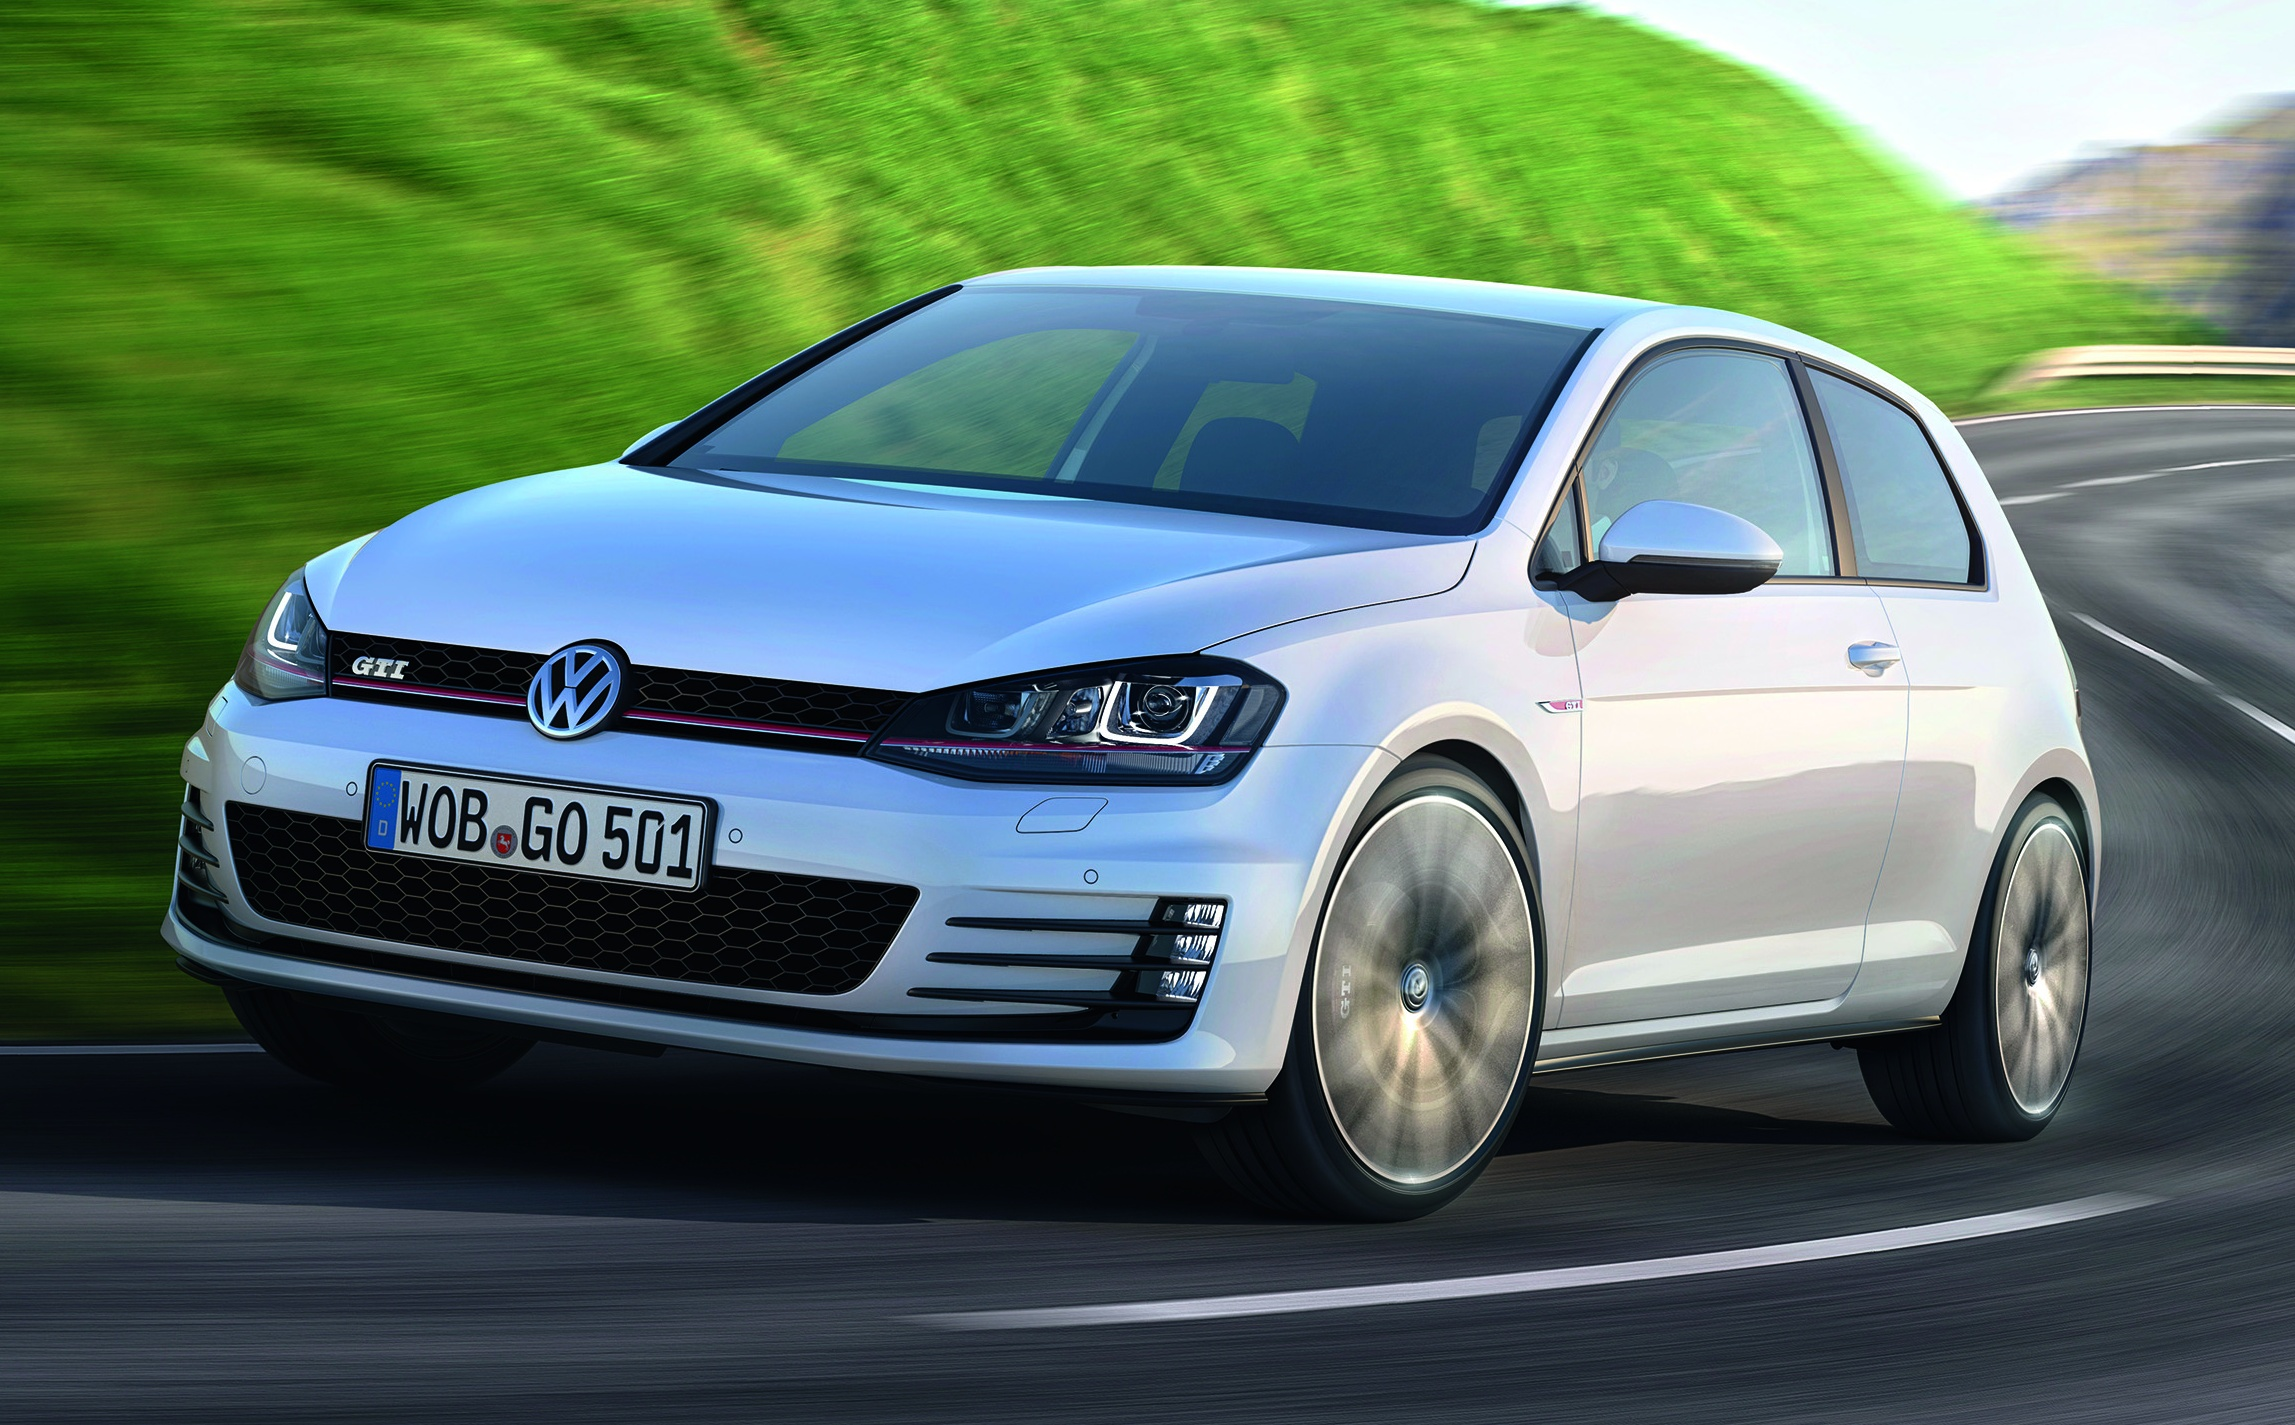 2018 Volkswagen Golf >> Volkswagen Golf GTI Mk7 to premiere in Geneva Paul Tan - Image 157657